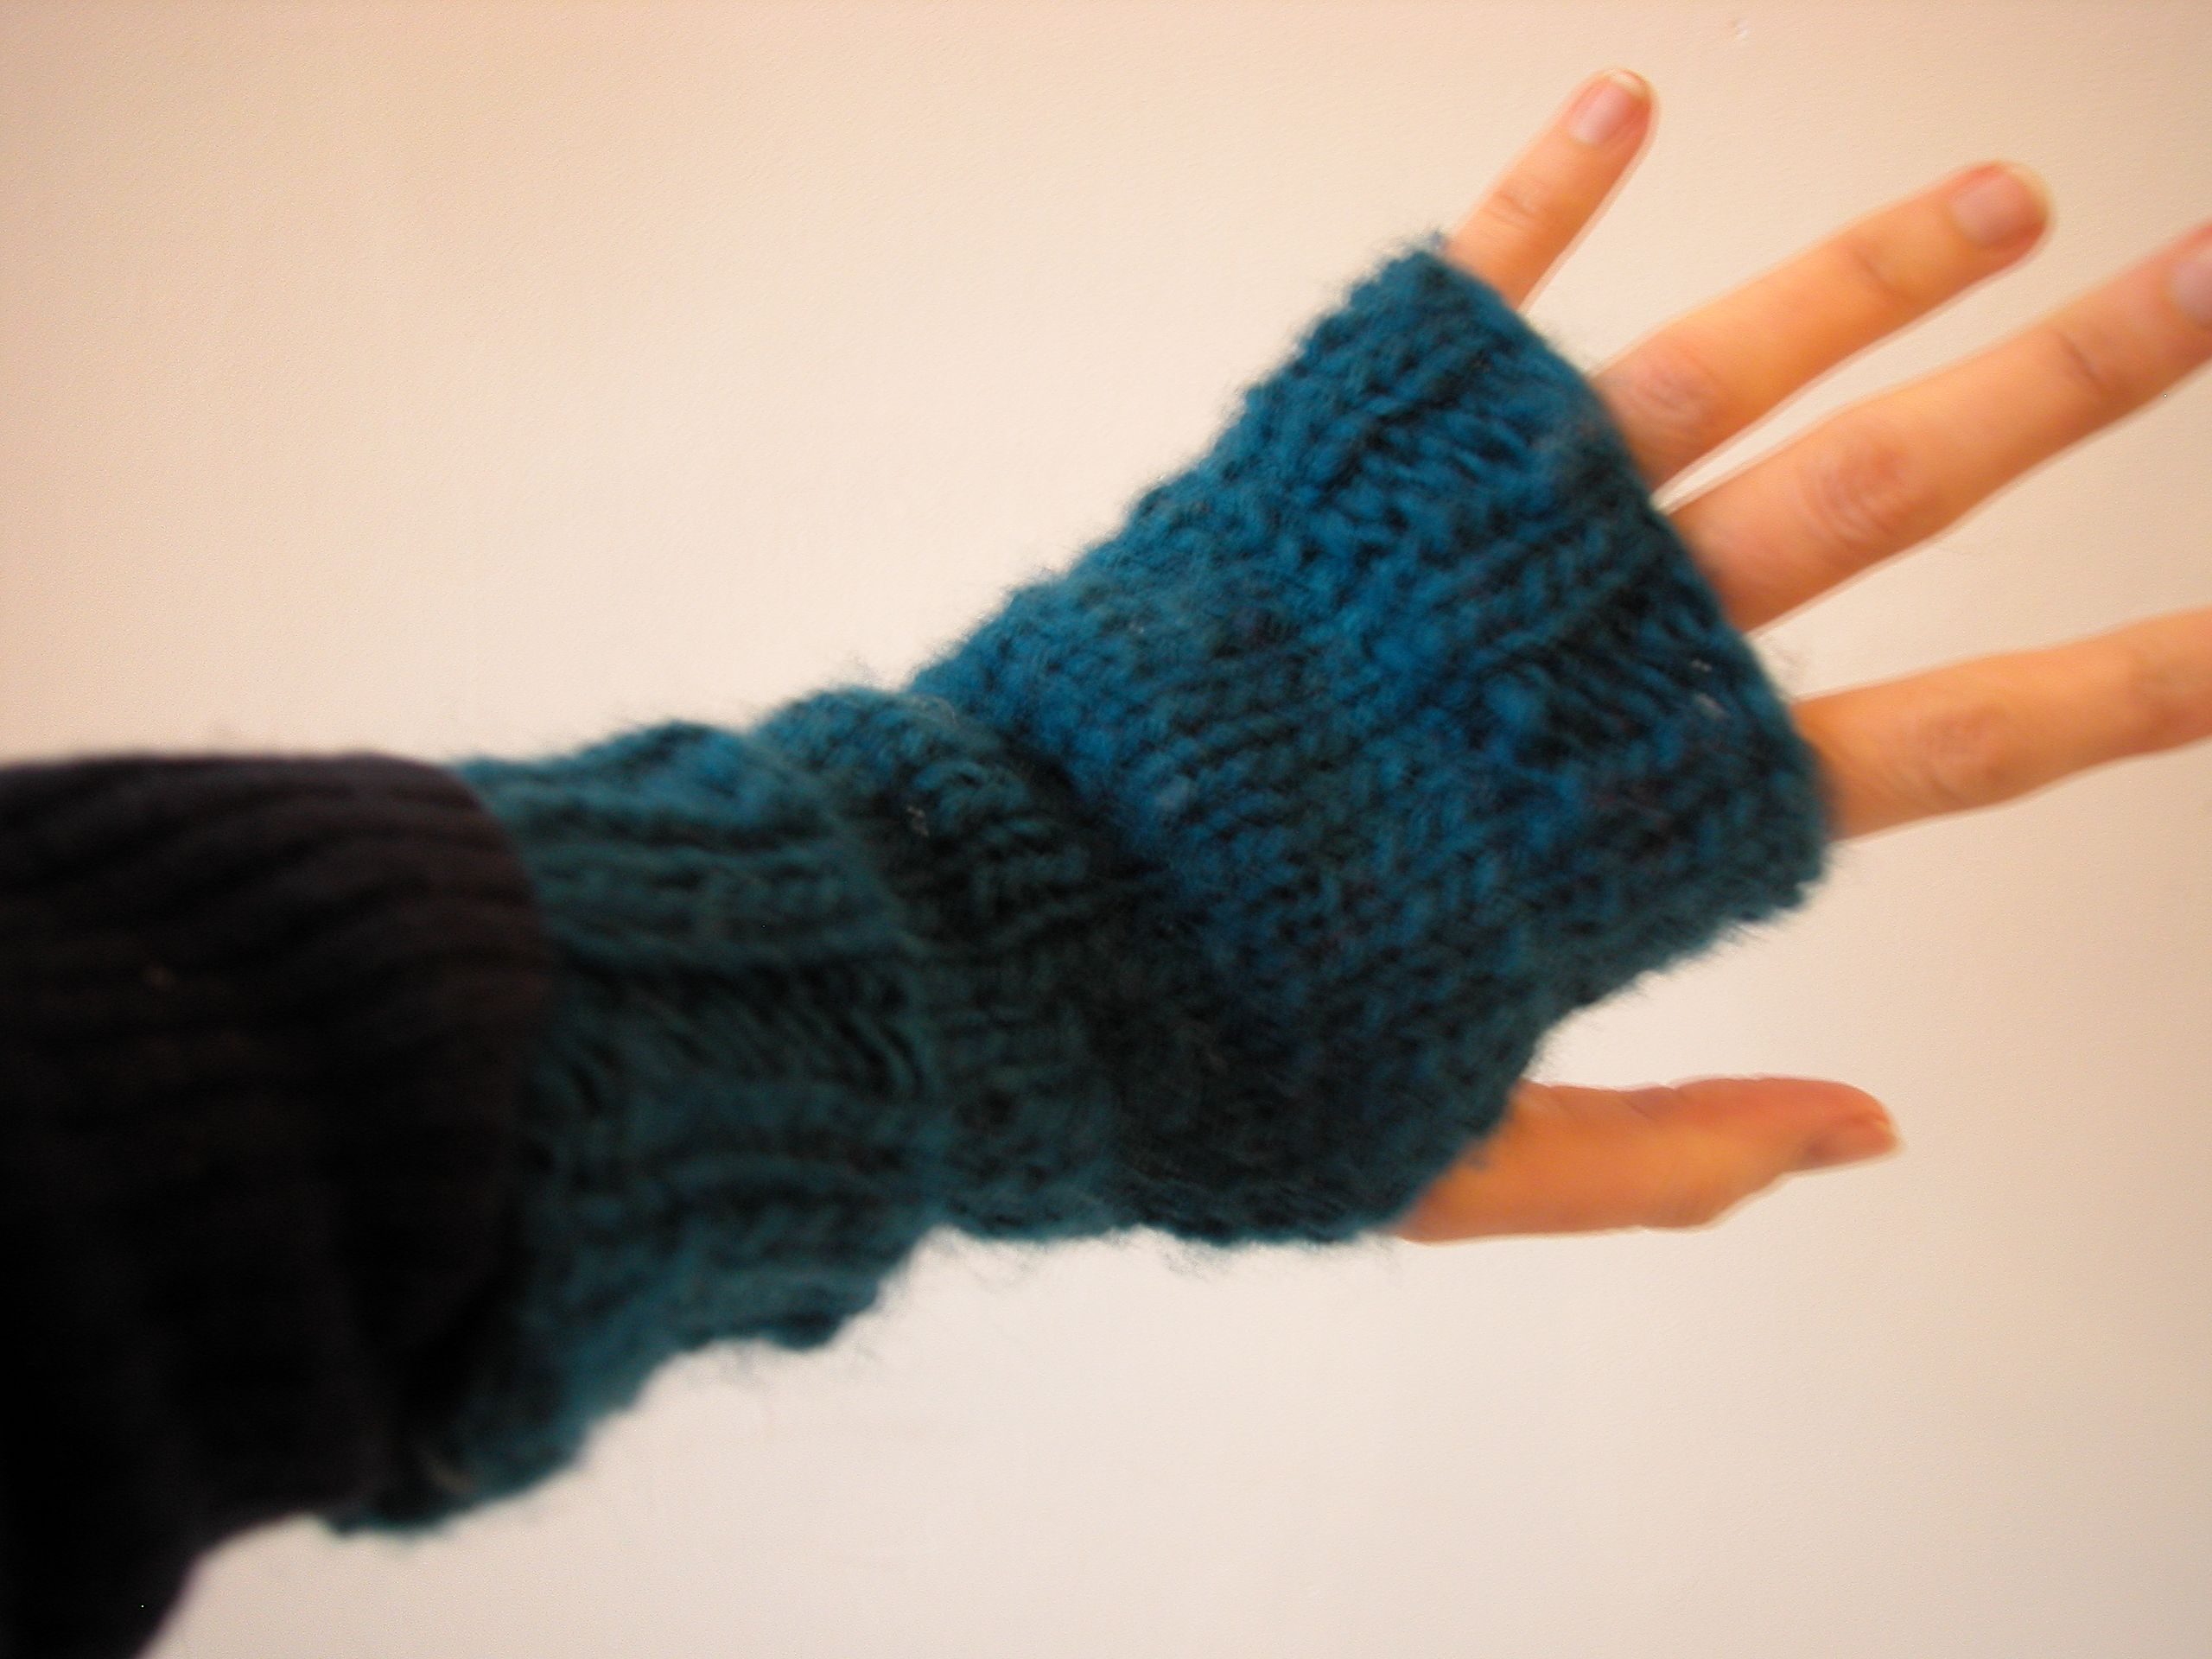 Fingerless Glove Pattern Knitting : lickity-split fingerless mitts the knit cafe